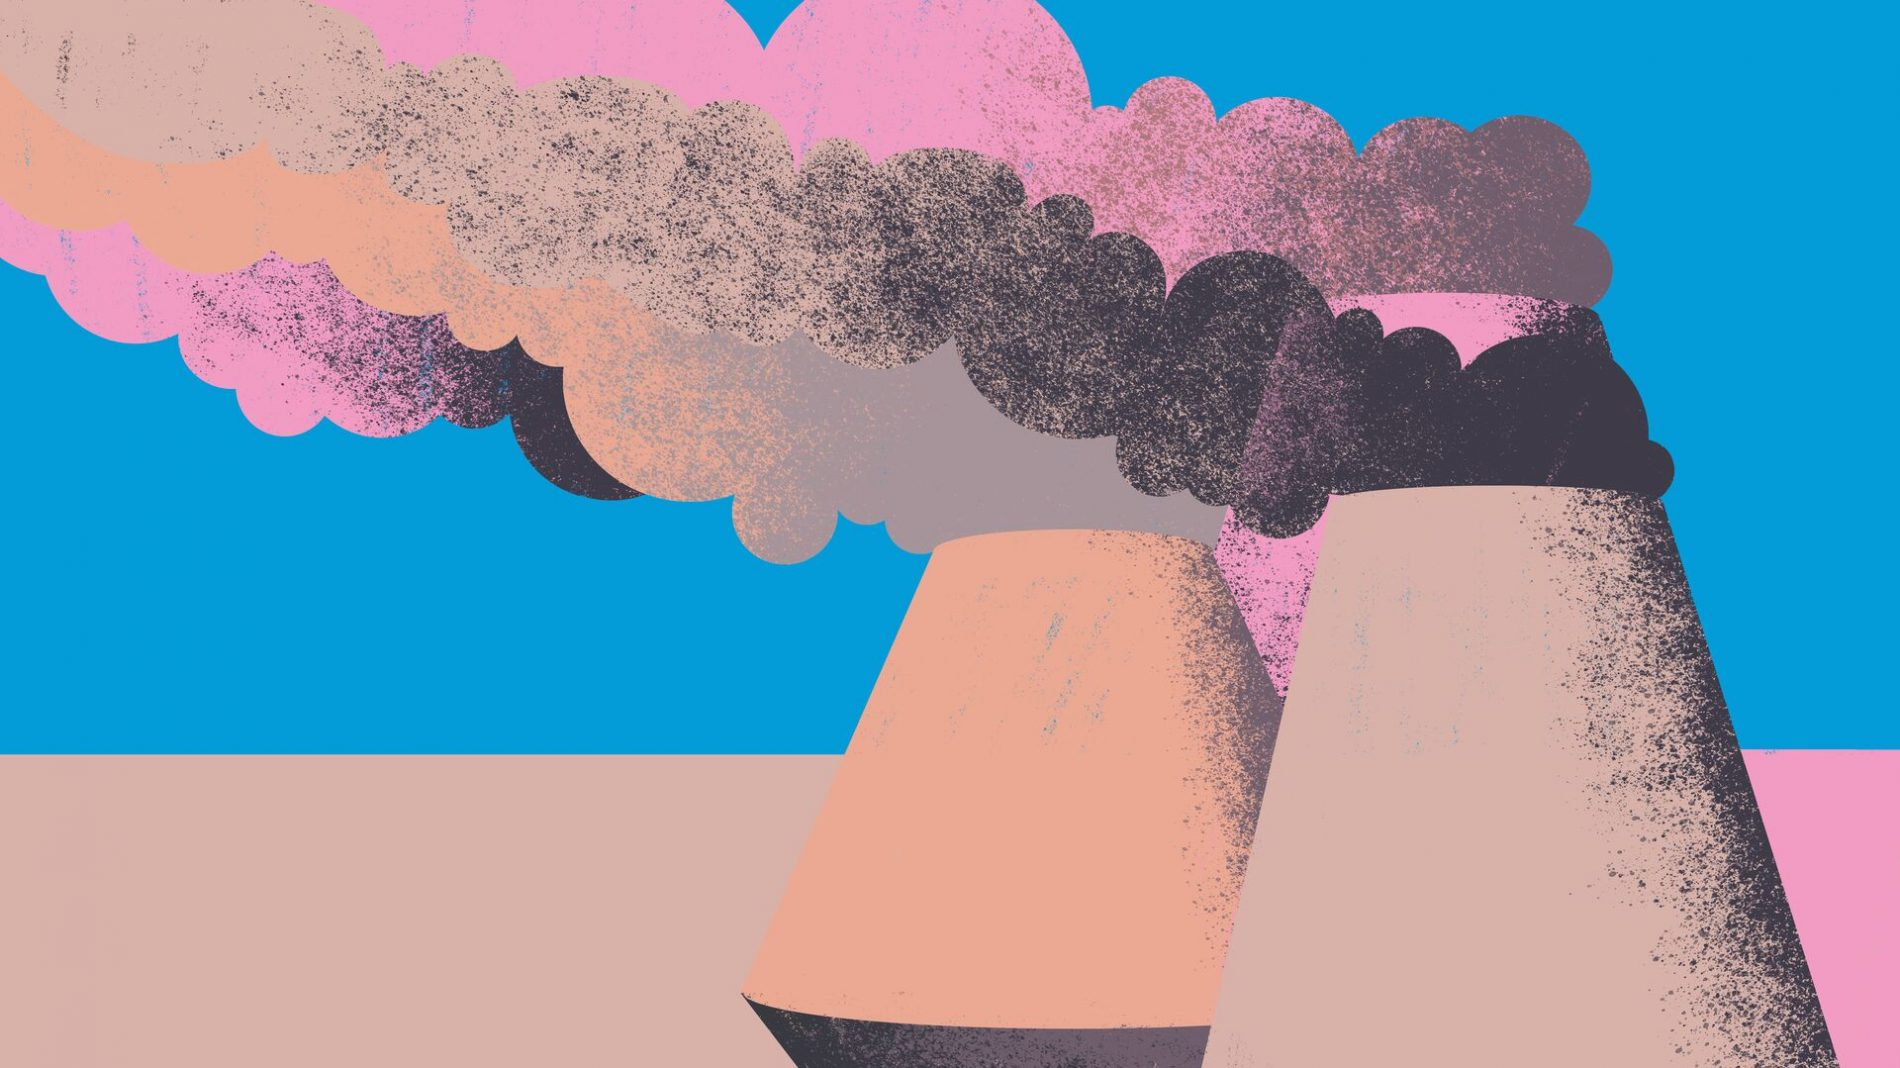 illustration of burning fossil fuels contributes to climate change